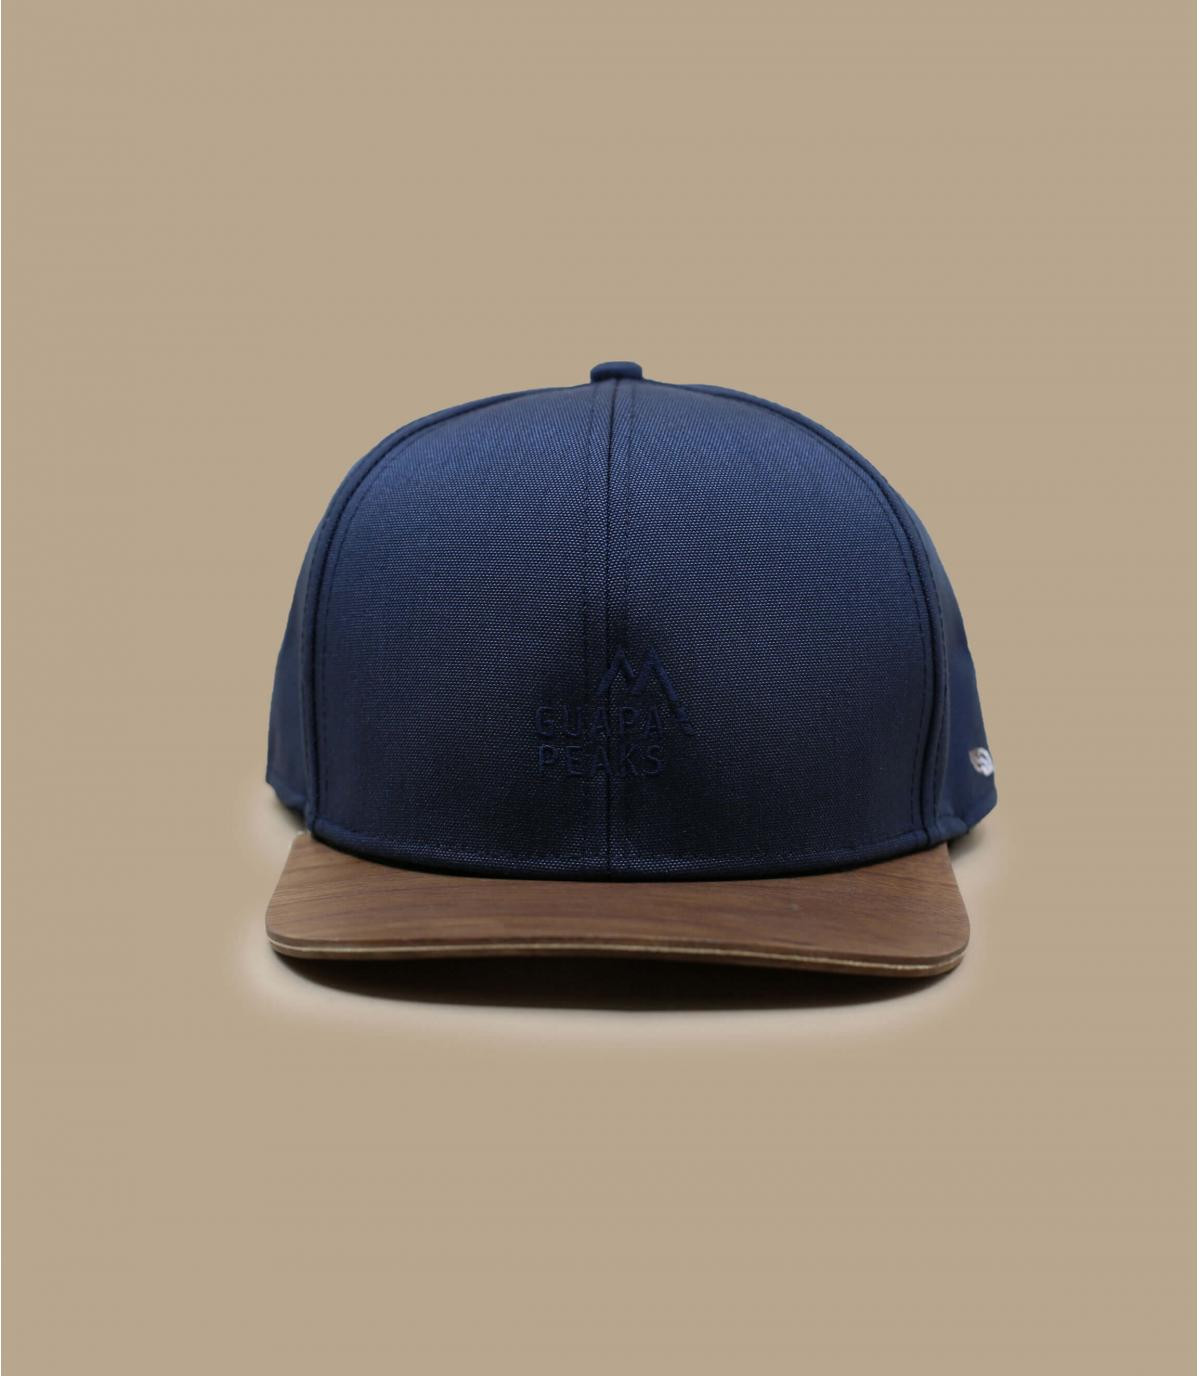 Details Snapback Recycled navy - Abbildung 2